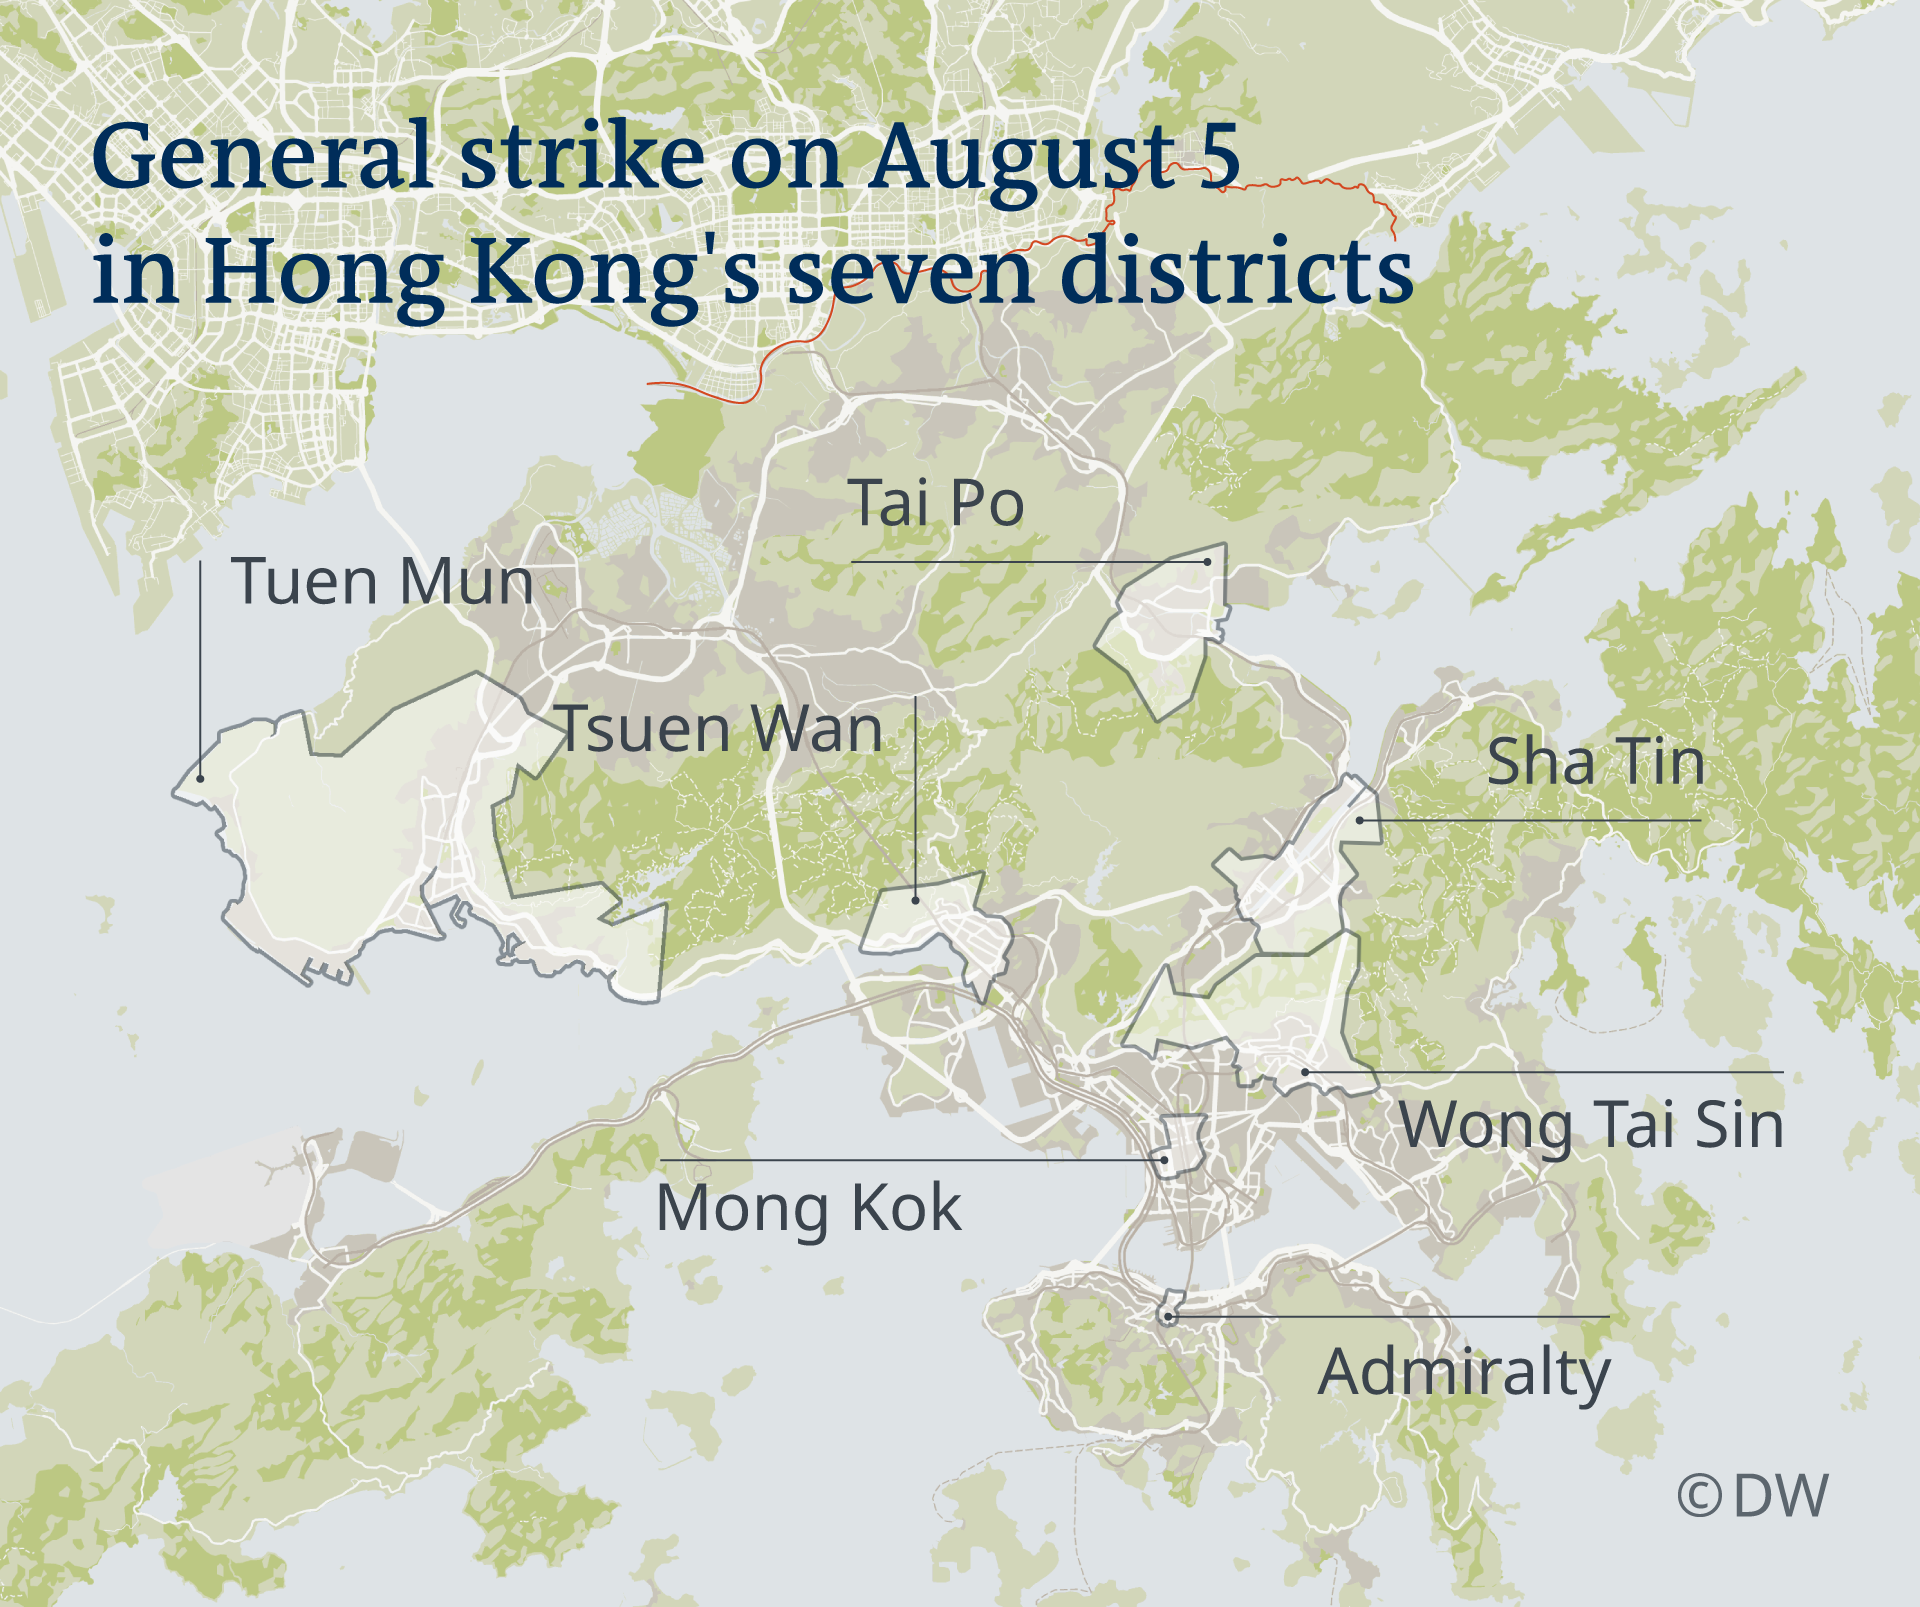 Map of the planned general strike in Hong Kong on August 5, 2019